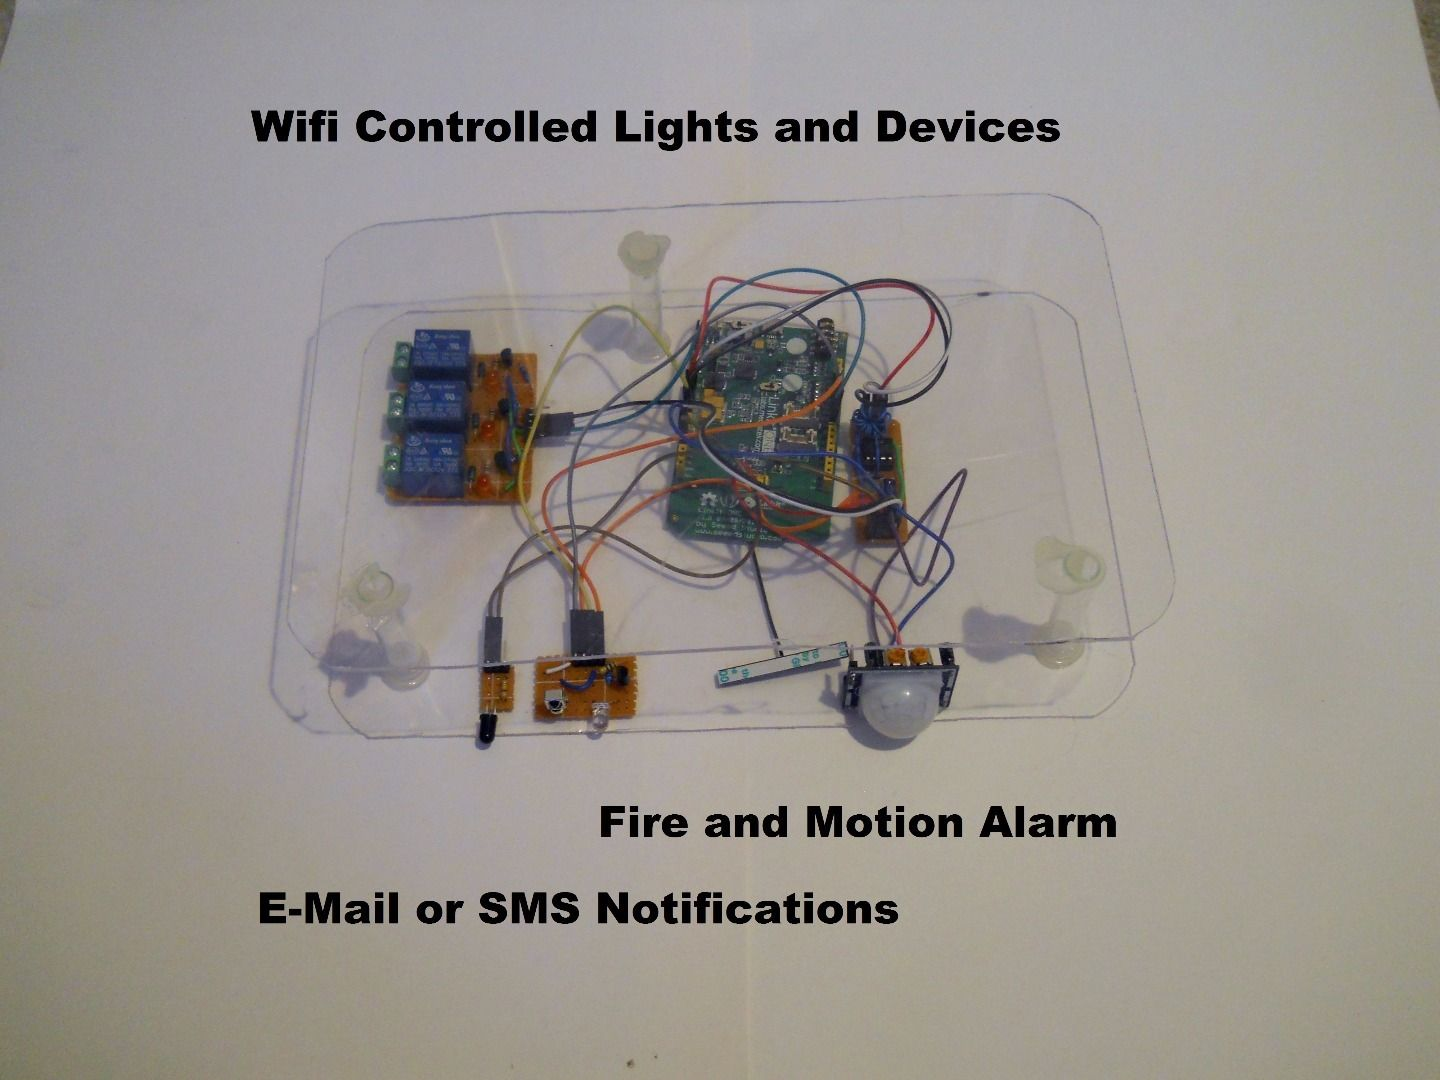 Arduino Home Automation Wiring Diagram Explained Diagrams Images Of Phone Controlled Via Wifi House